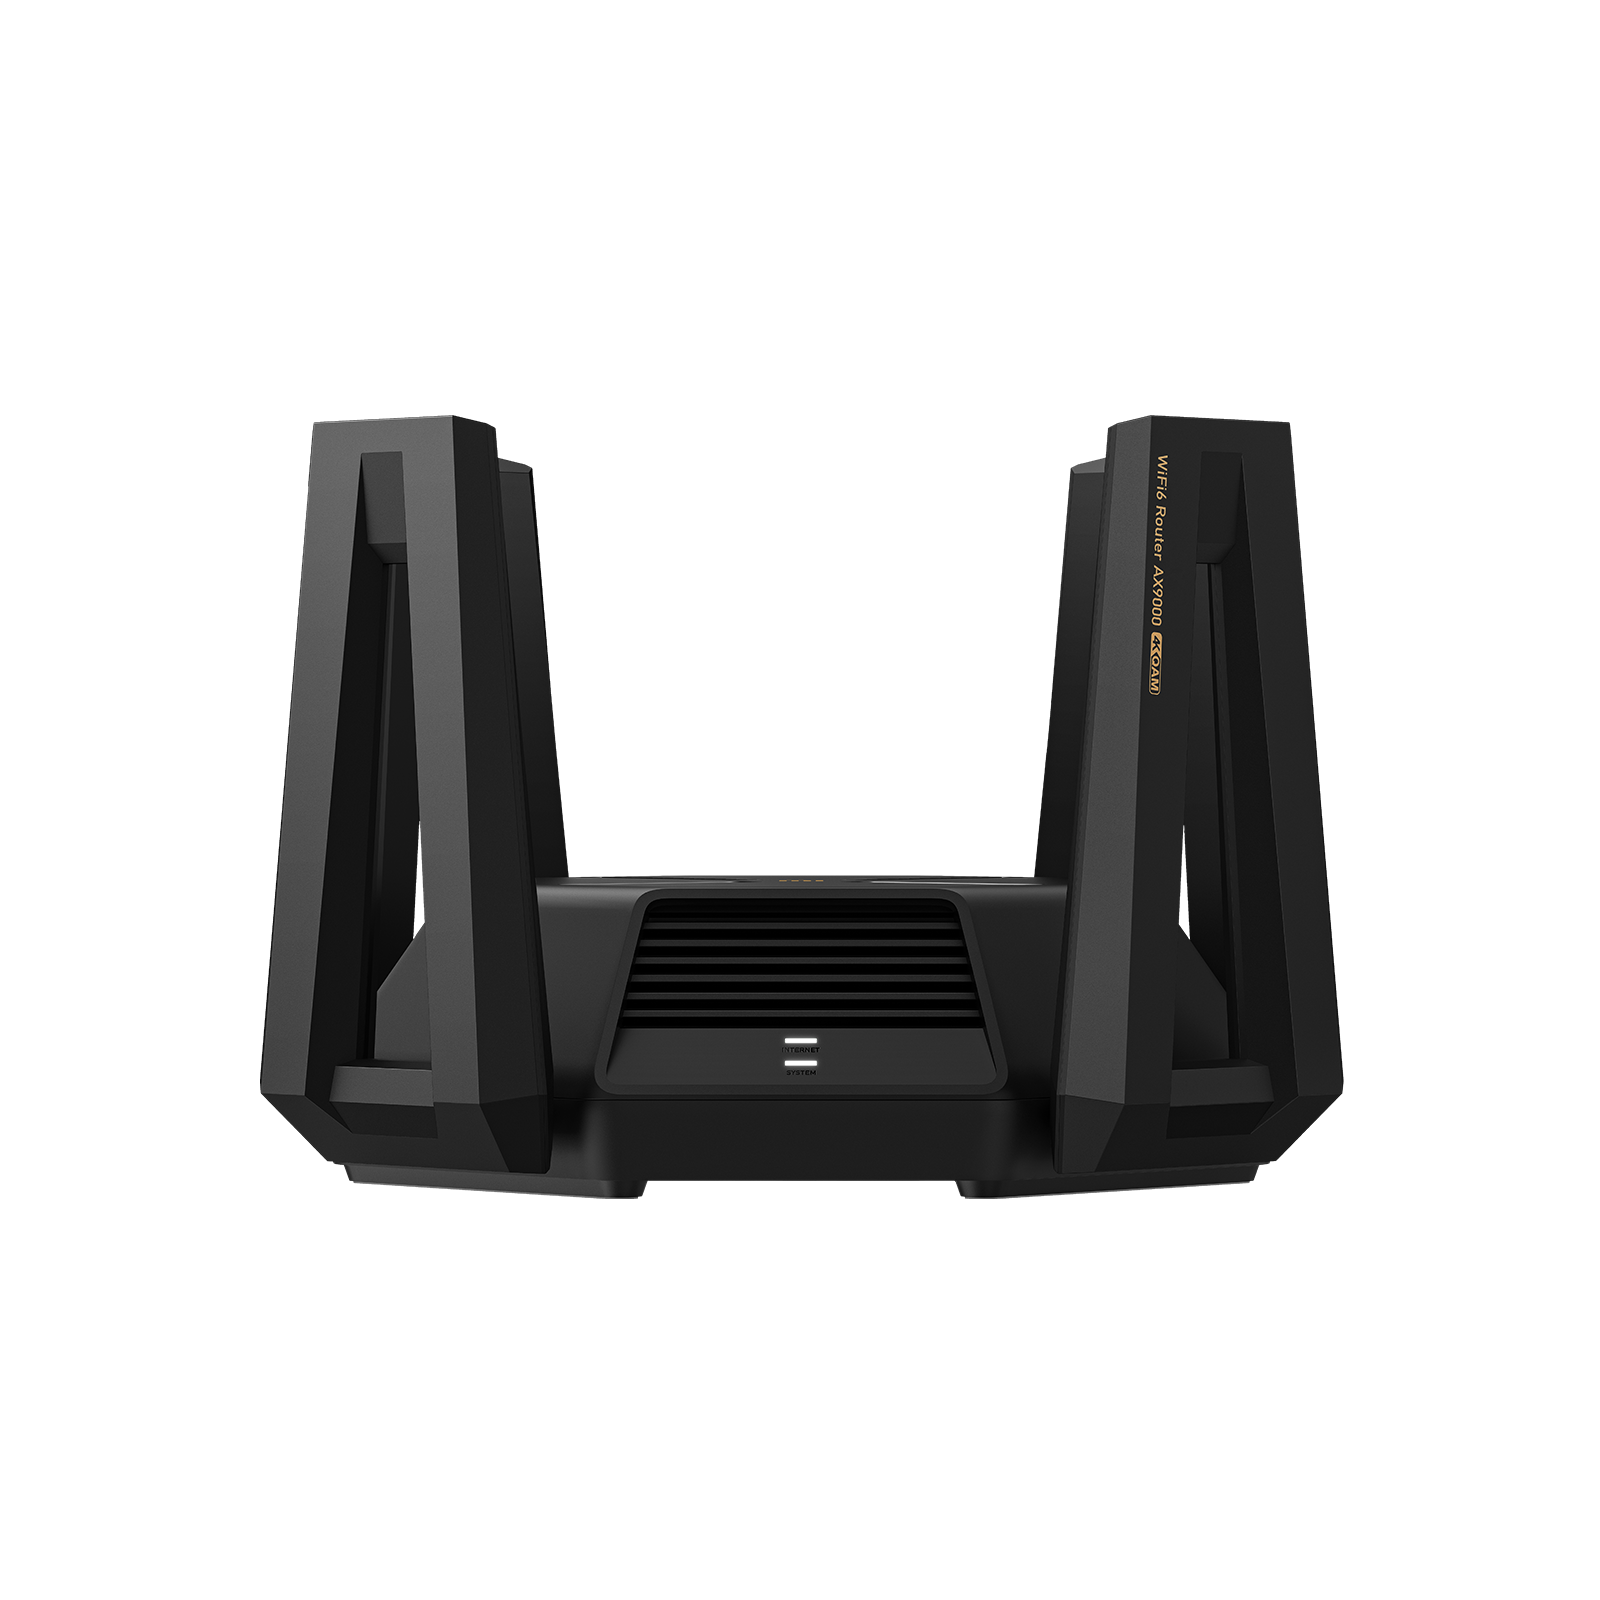 My AX9000 Router